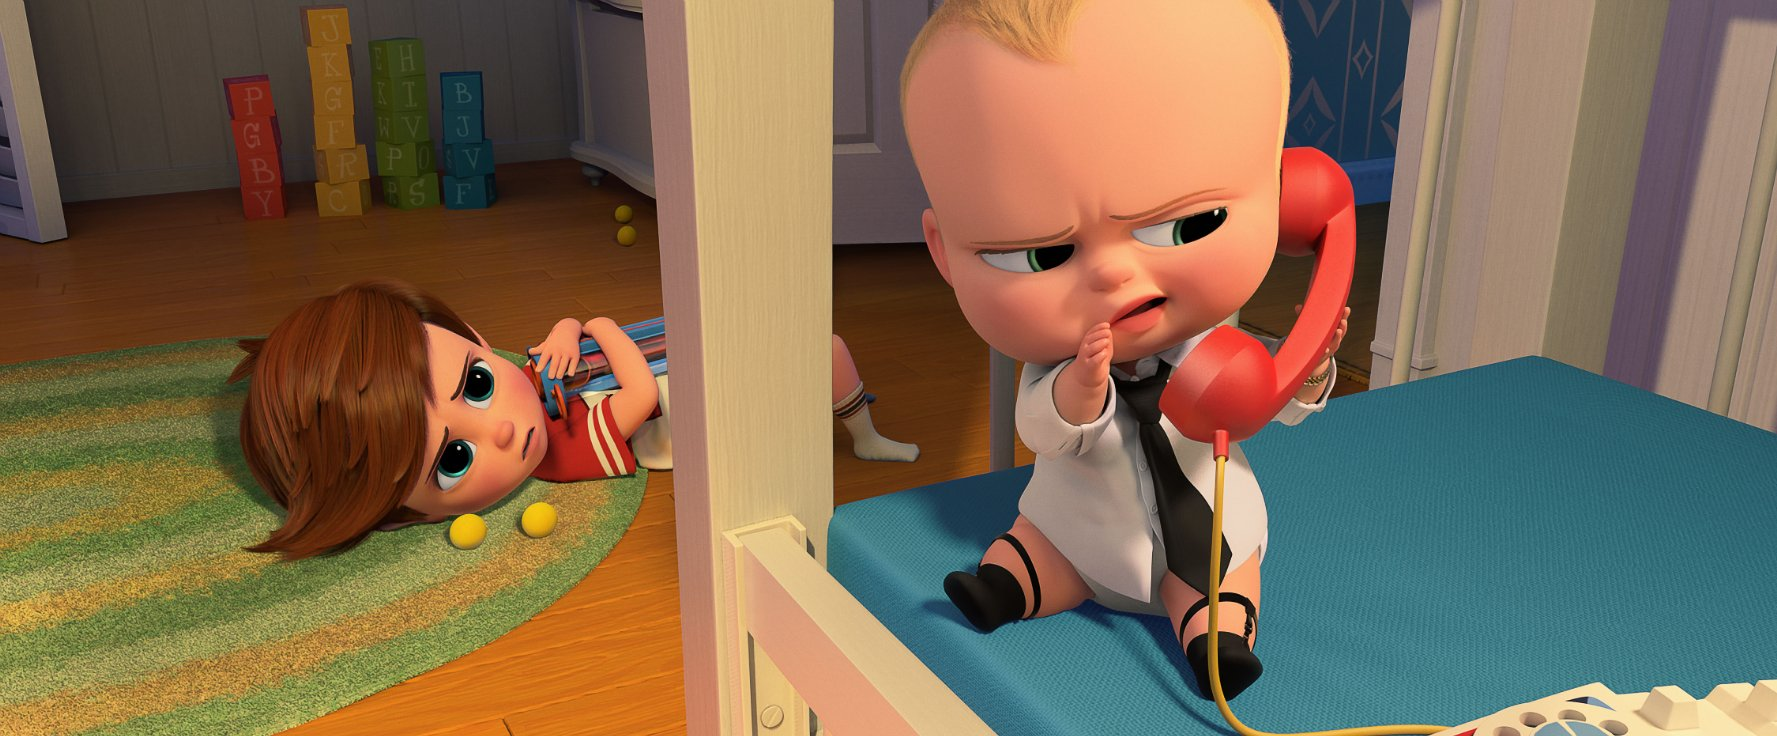 Vod Review The Boss Baby Oscar Nominee Delmarvalife